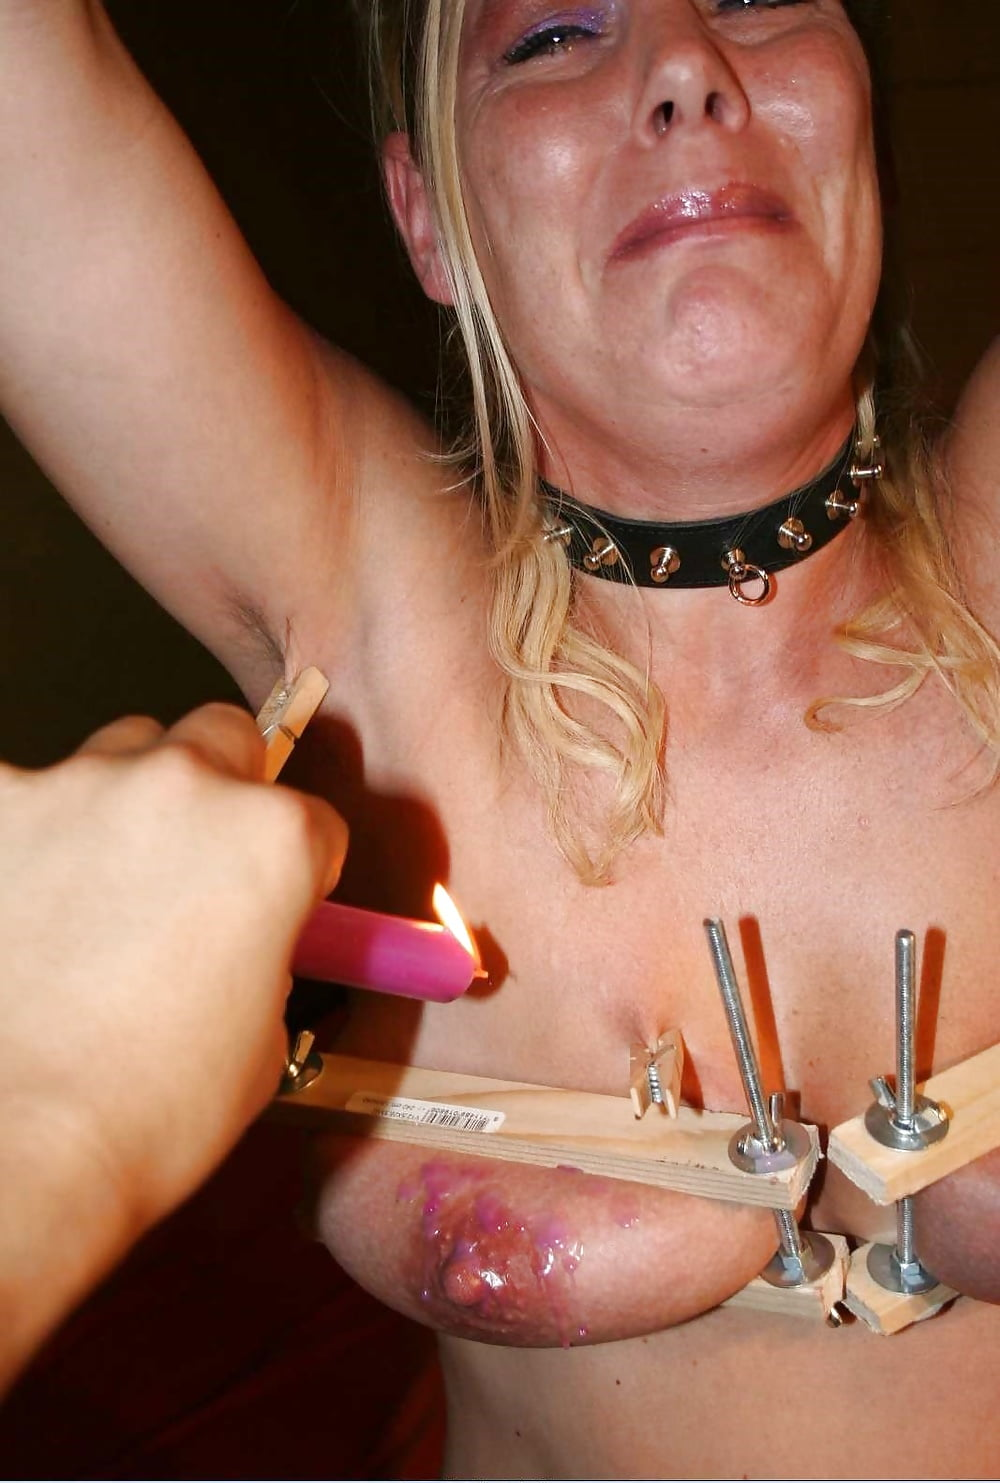 Bdsm nail needle piercing tourchered porn galery